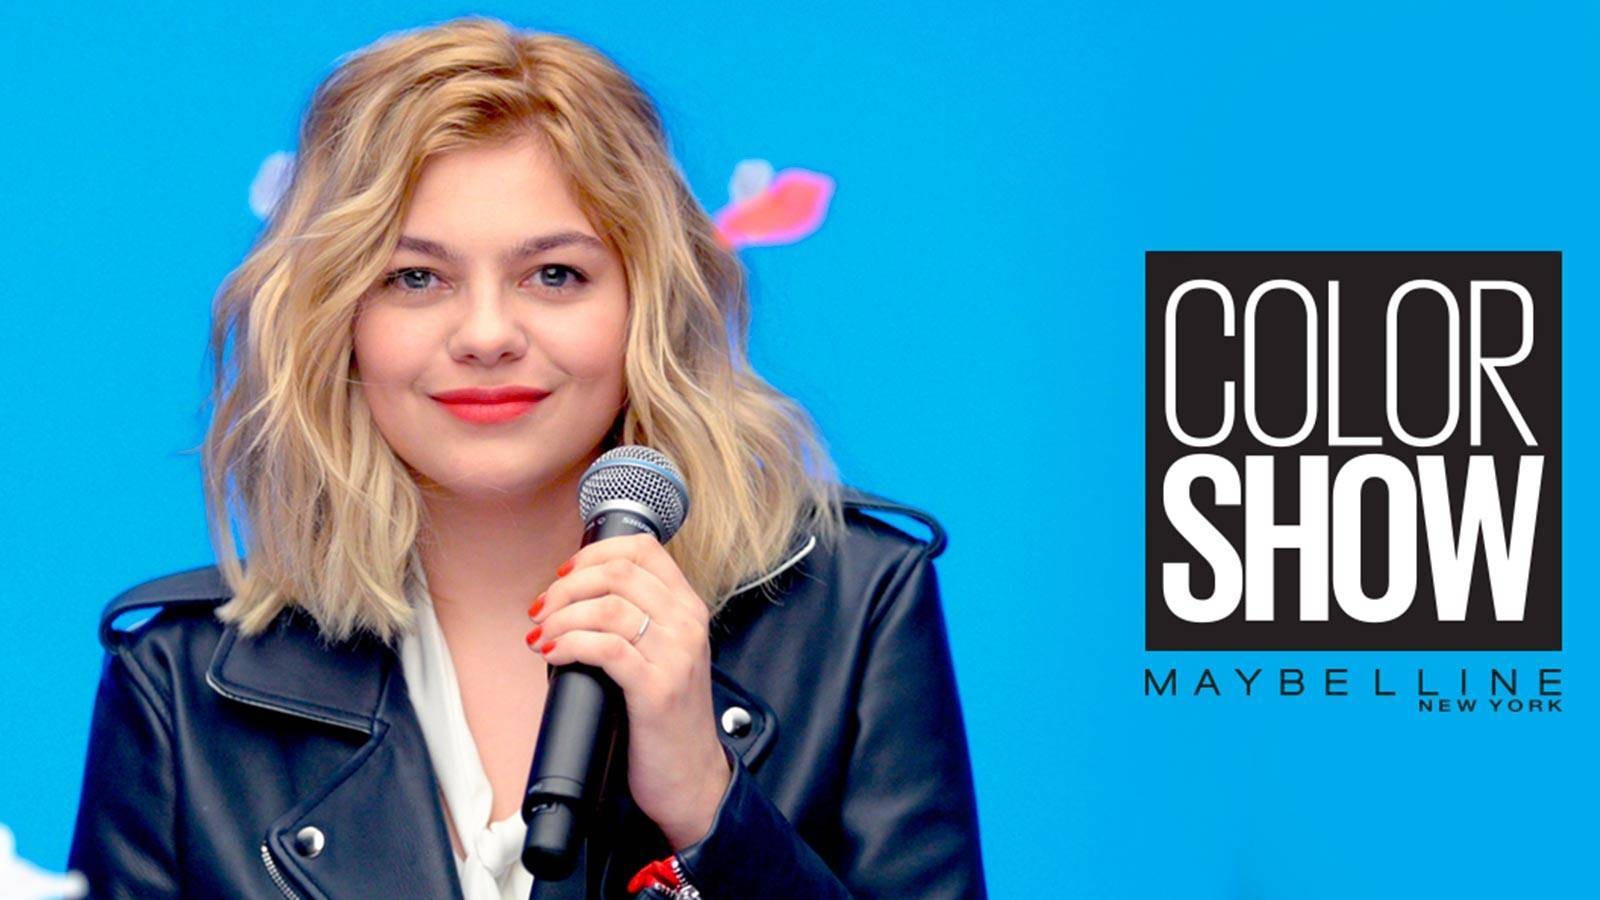 maybelline-clip-louane-colorshow-video-16x9